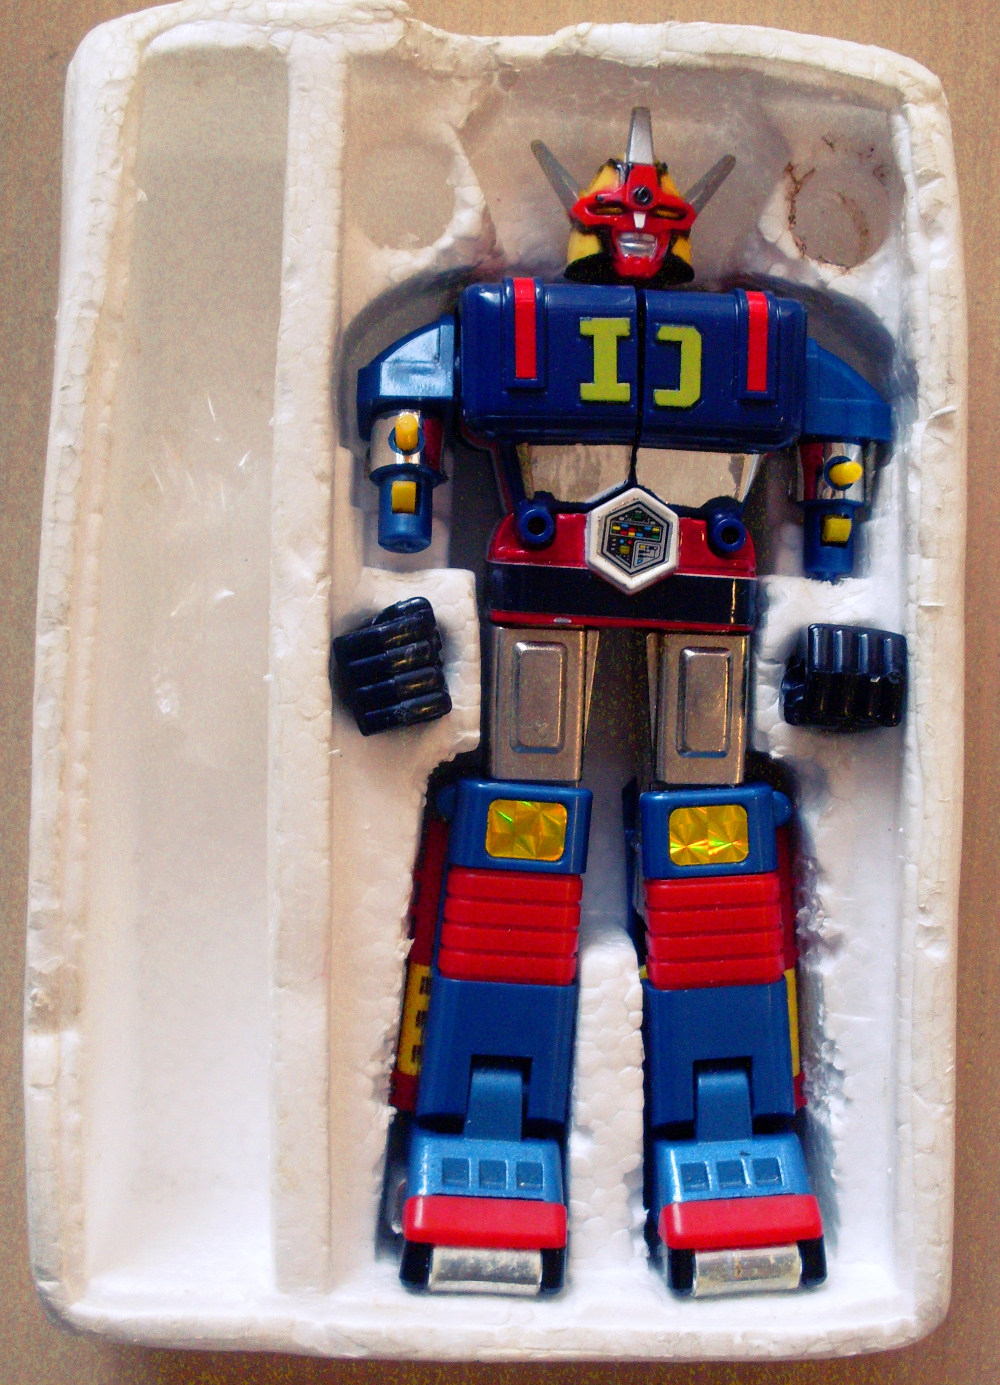 Treasure trove of trashed mecha toys | sqwabb